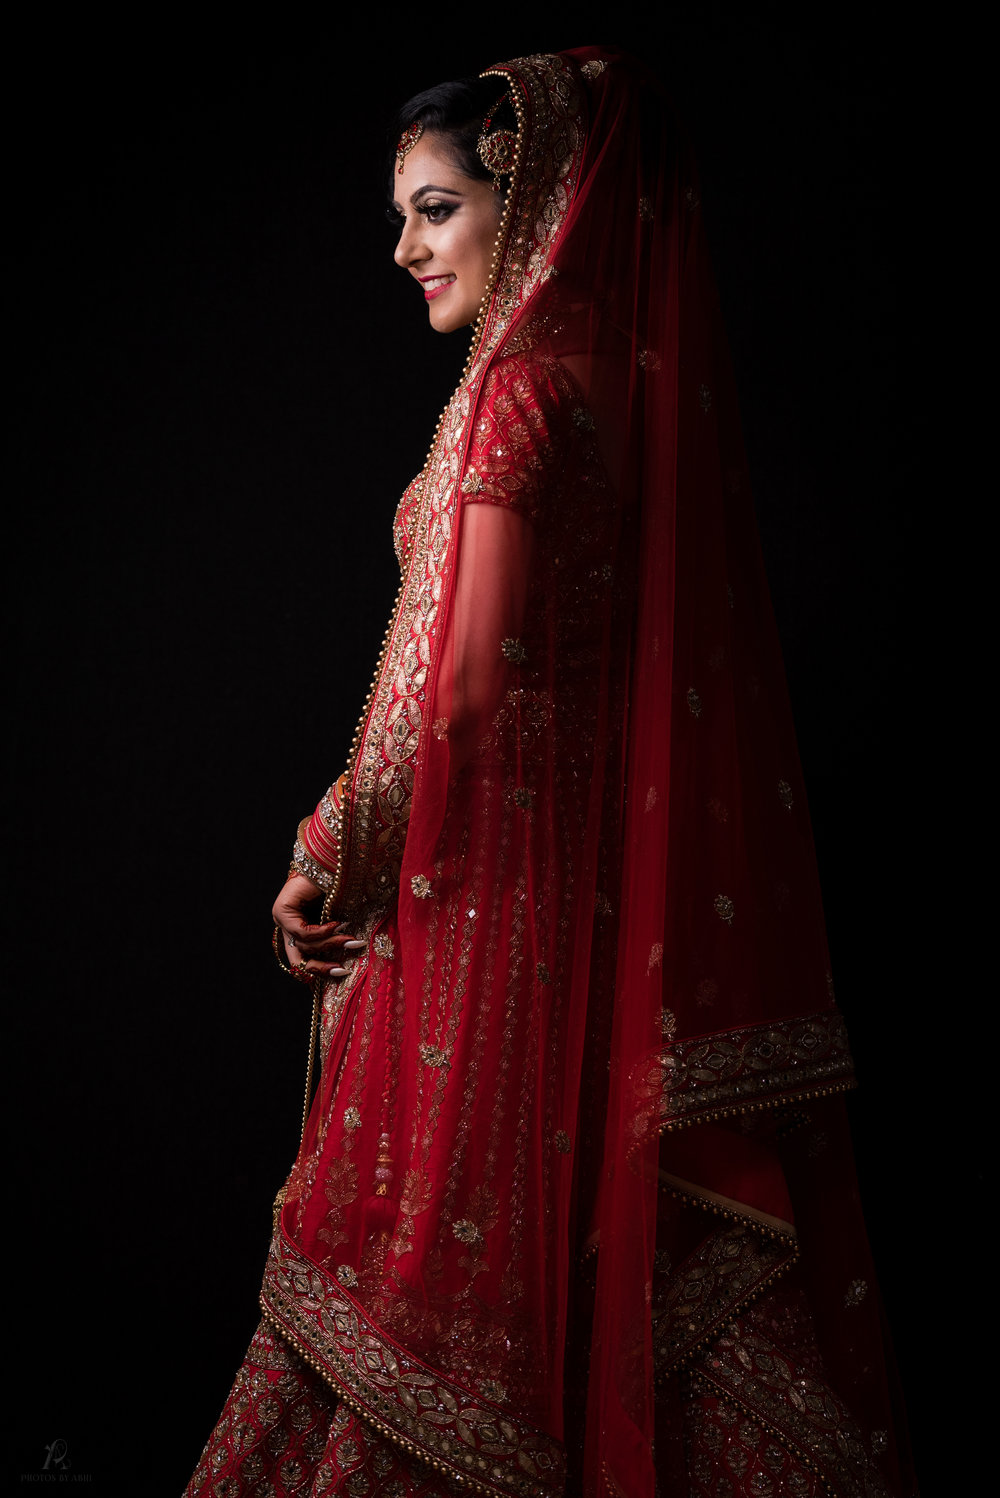 Sikh Wedding photographer - Hilton Hotel T5, London